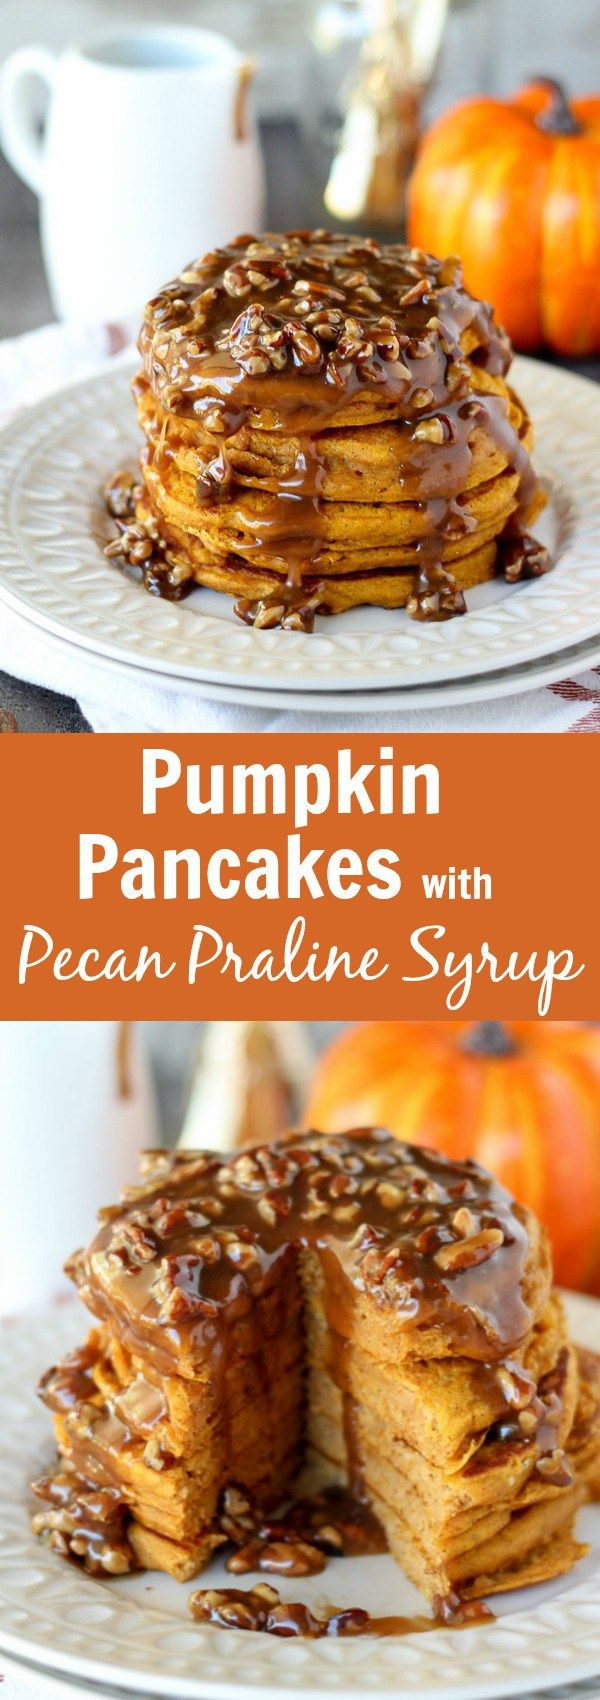 Pumpkin Pancakes with Pecan Praline Syrup - this syrup is AMAZING with the cream cheese pumpkin waffles!